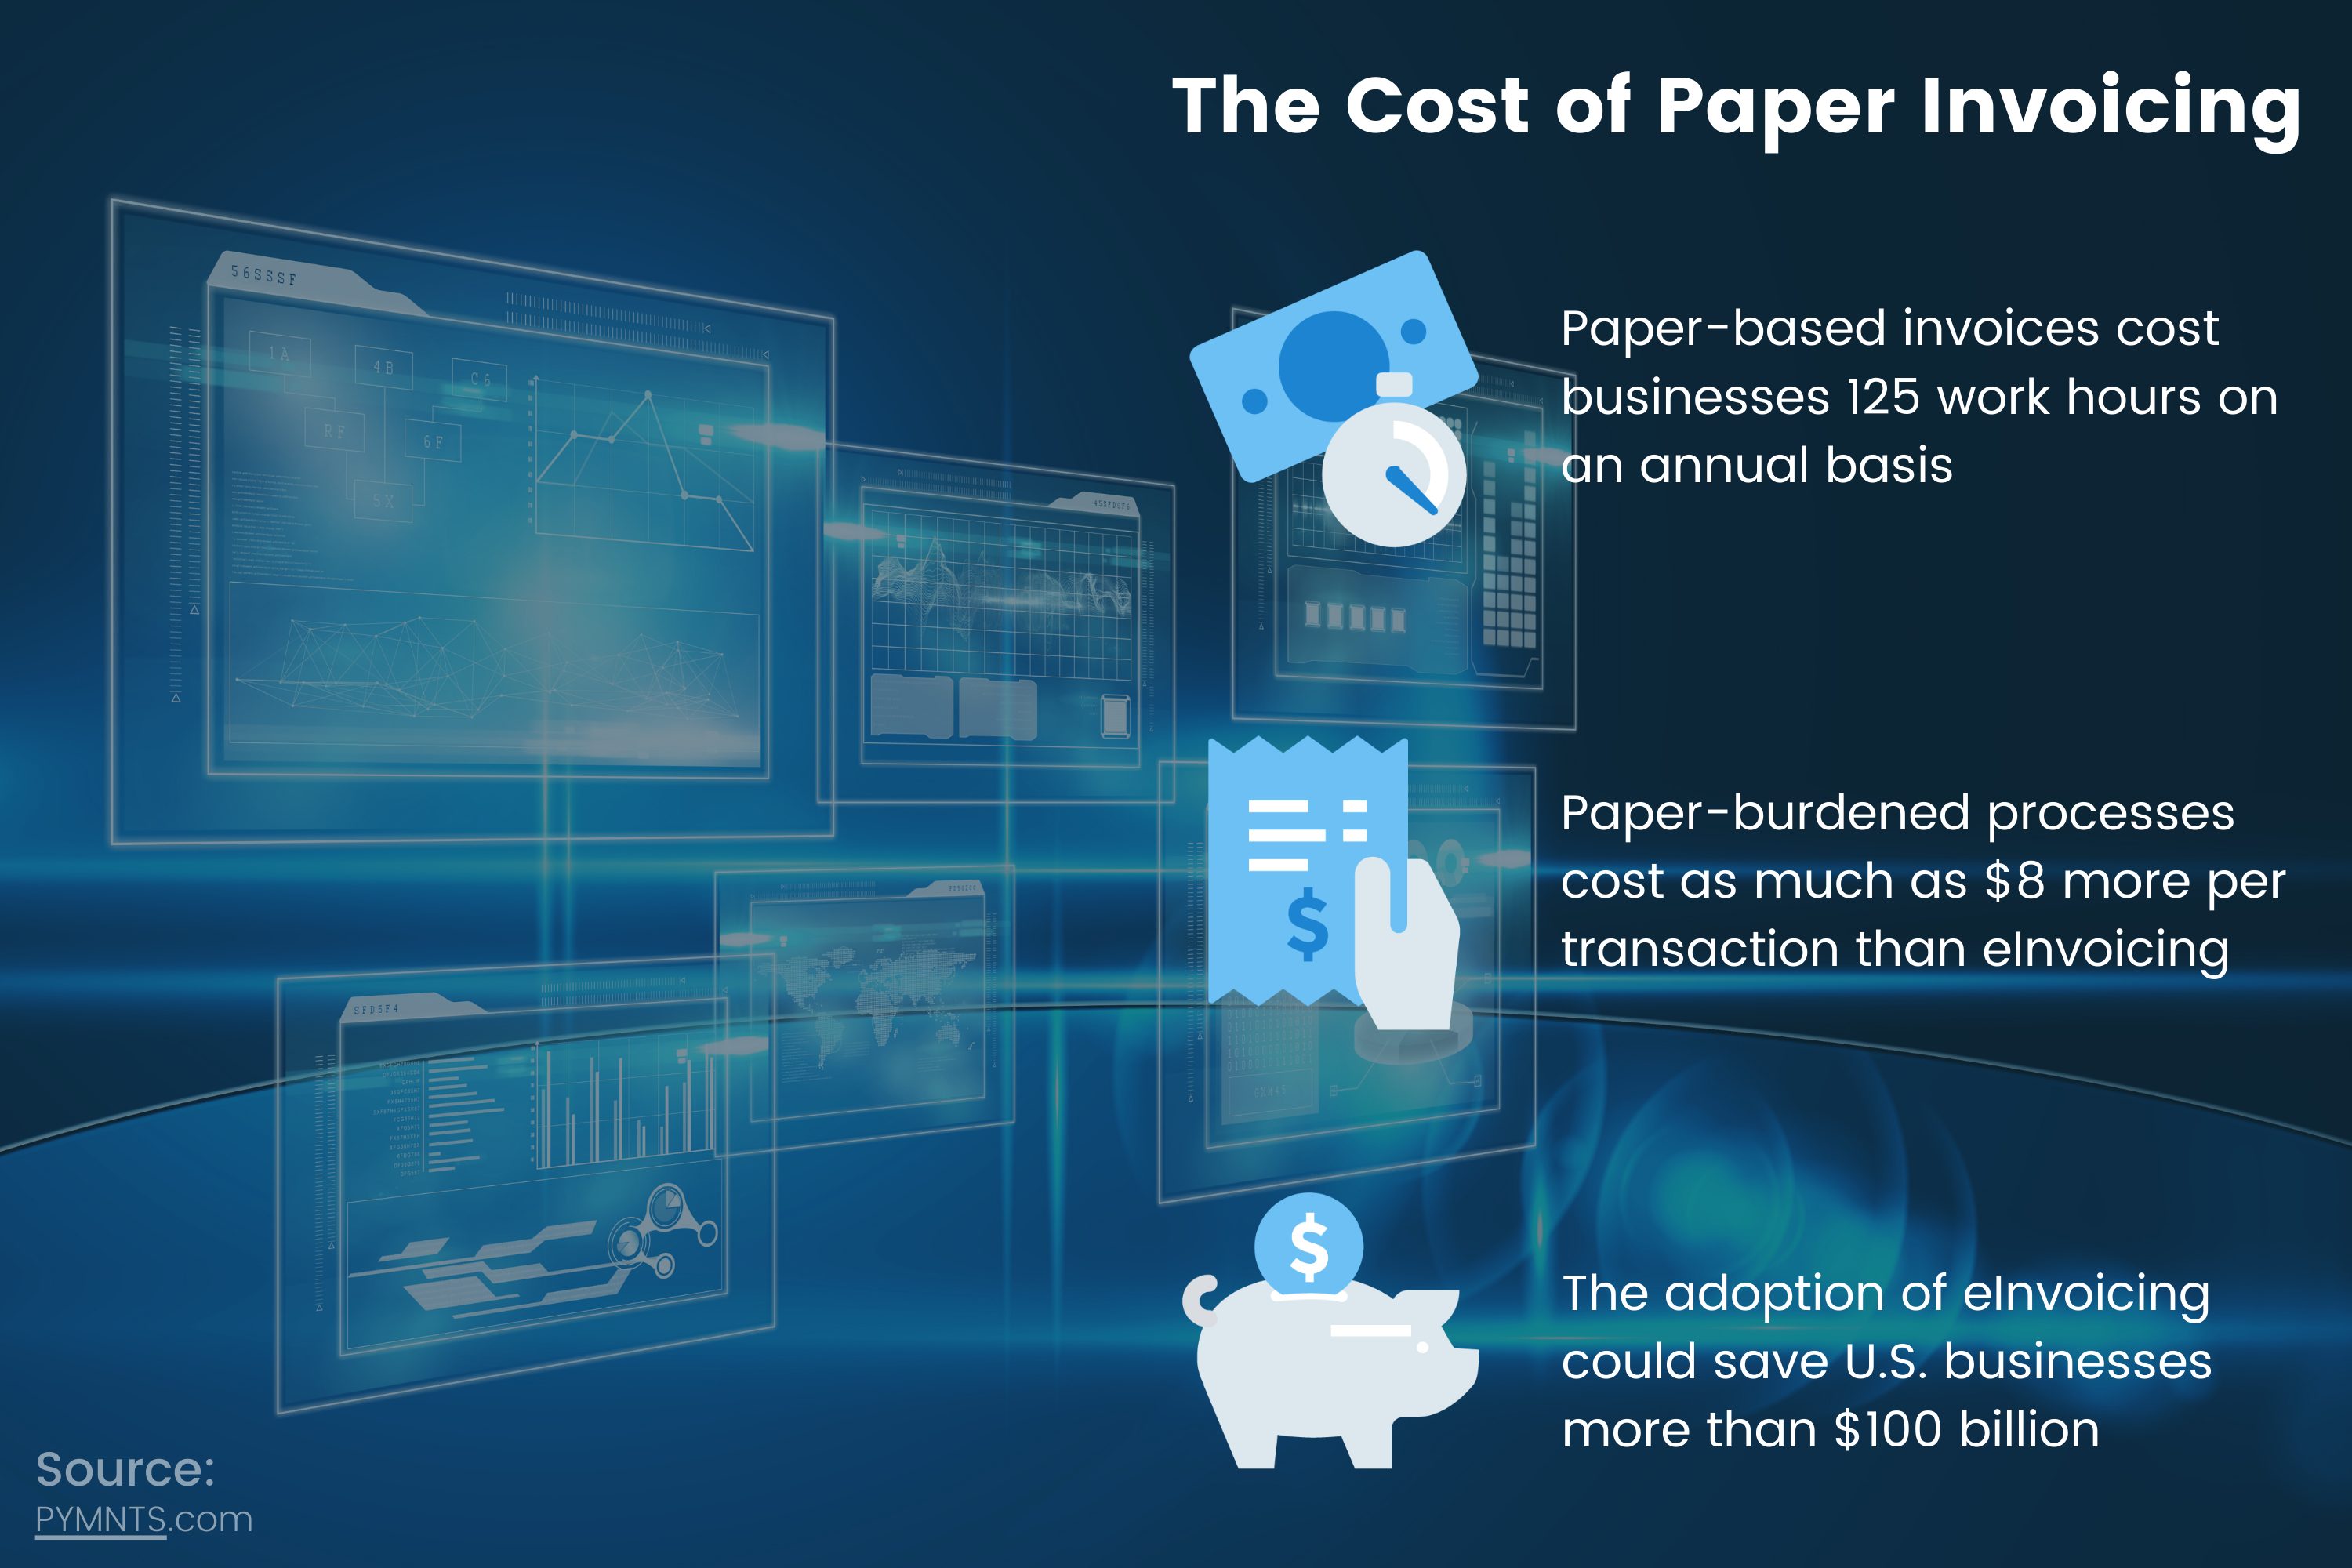 The_Cost_of_Antiquated_Paper_Invoicing_Infographic_with_Statistics-1